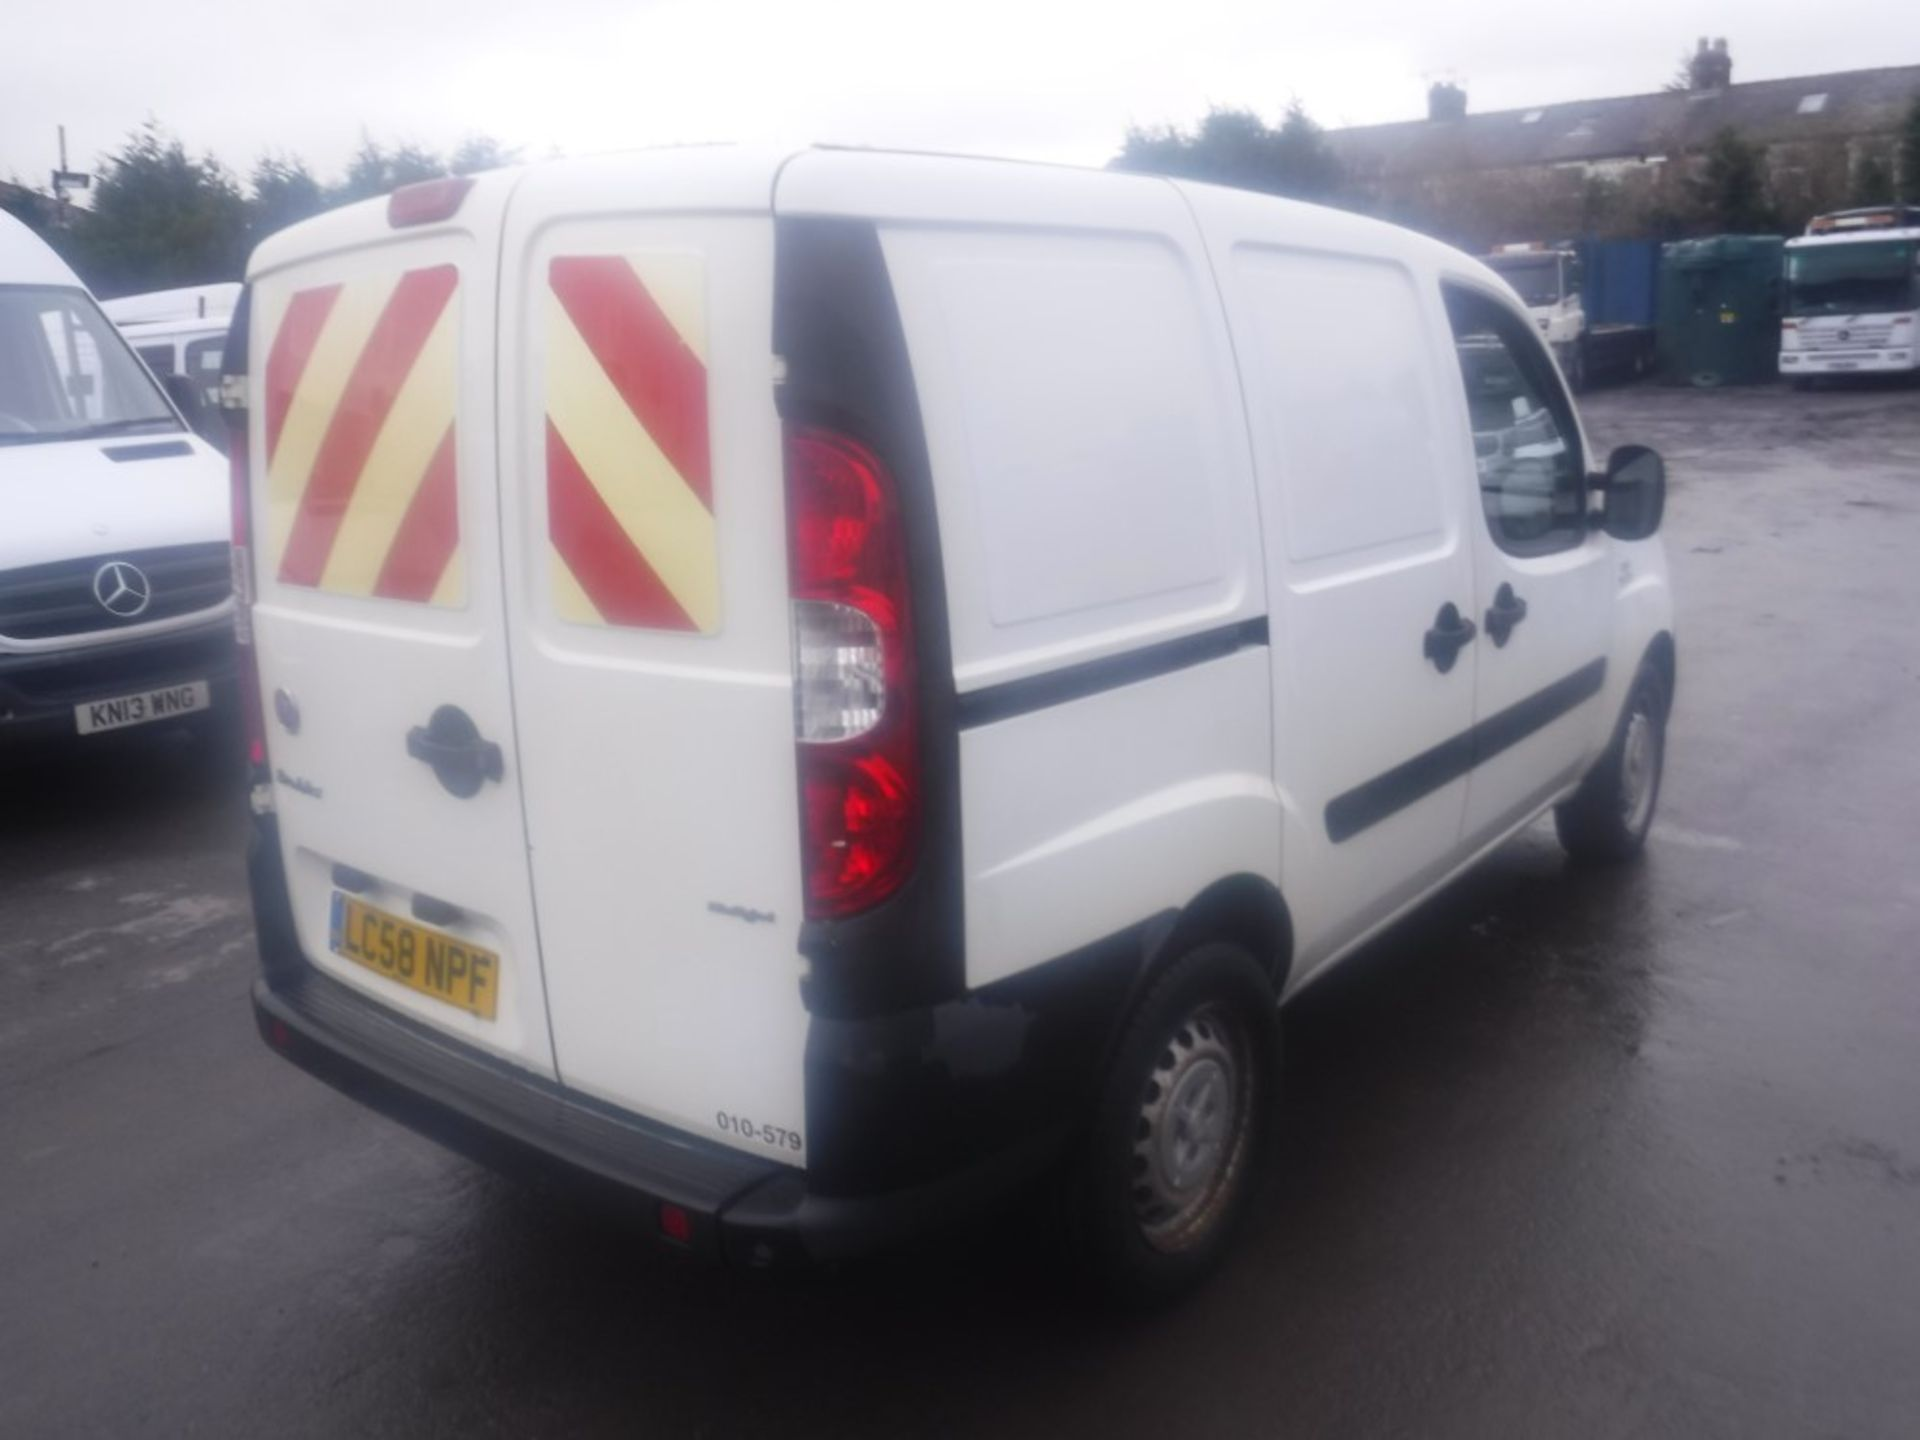 Lot 27 - 58 reg FIAT DOBLO CARGO MULTIJET 16V (DIRECT COUNCIL) 1ST REG 12/08, TEST 01/20, 103466M, V5 HERE, 1